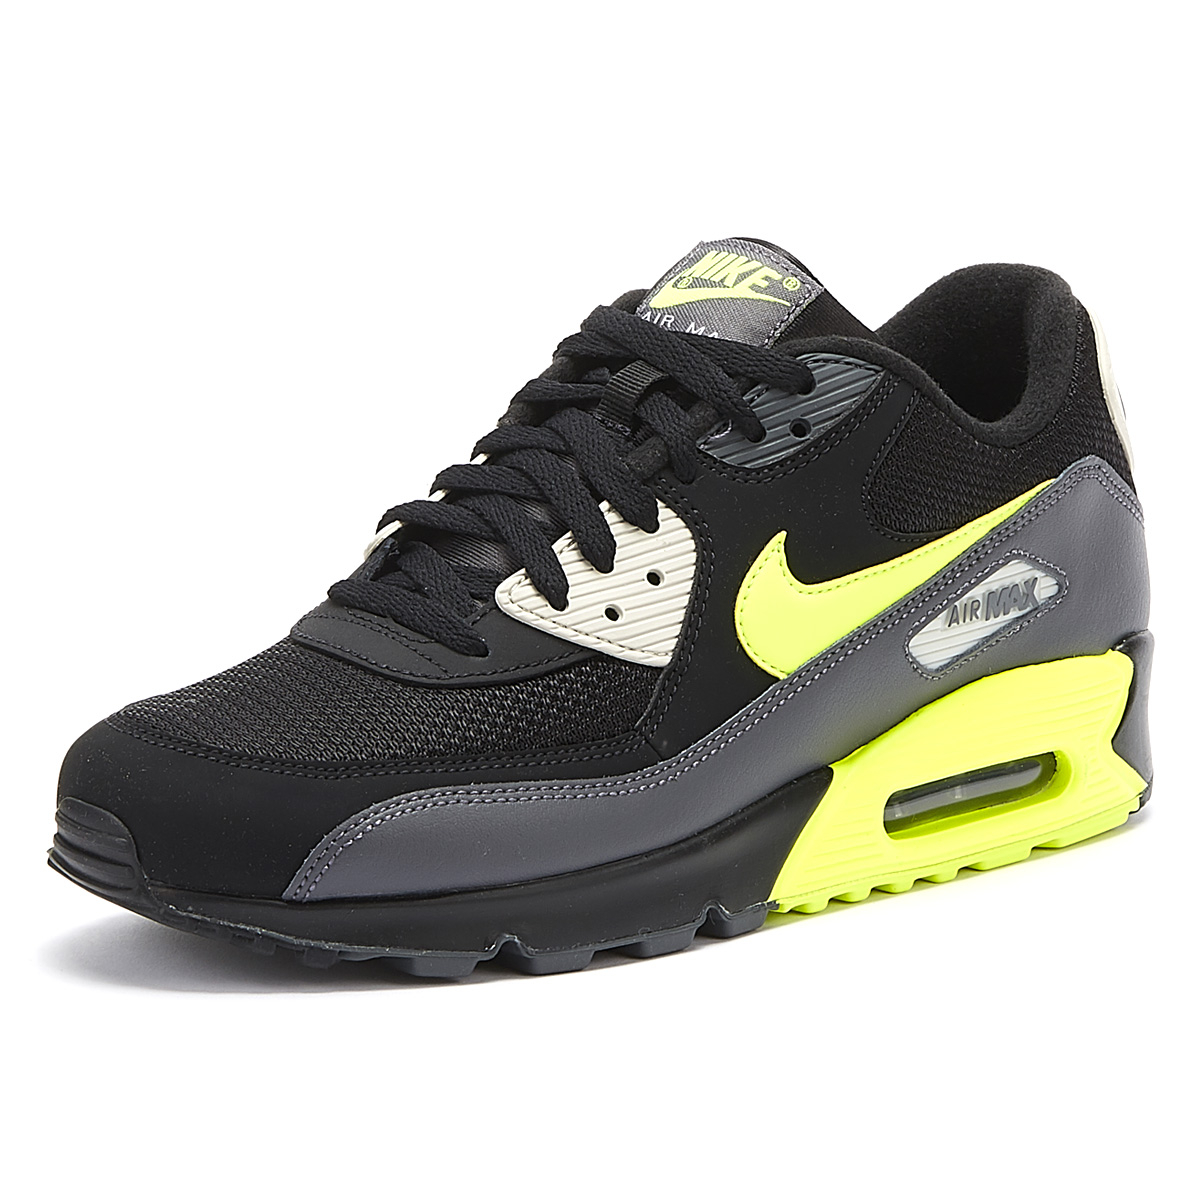 new product ce59f 9714b Details about Nike Air Max 90 Essential Mens Black / Volt Trainers Lace Up  Sport Casual Shoes